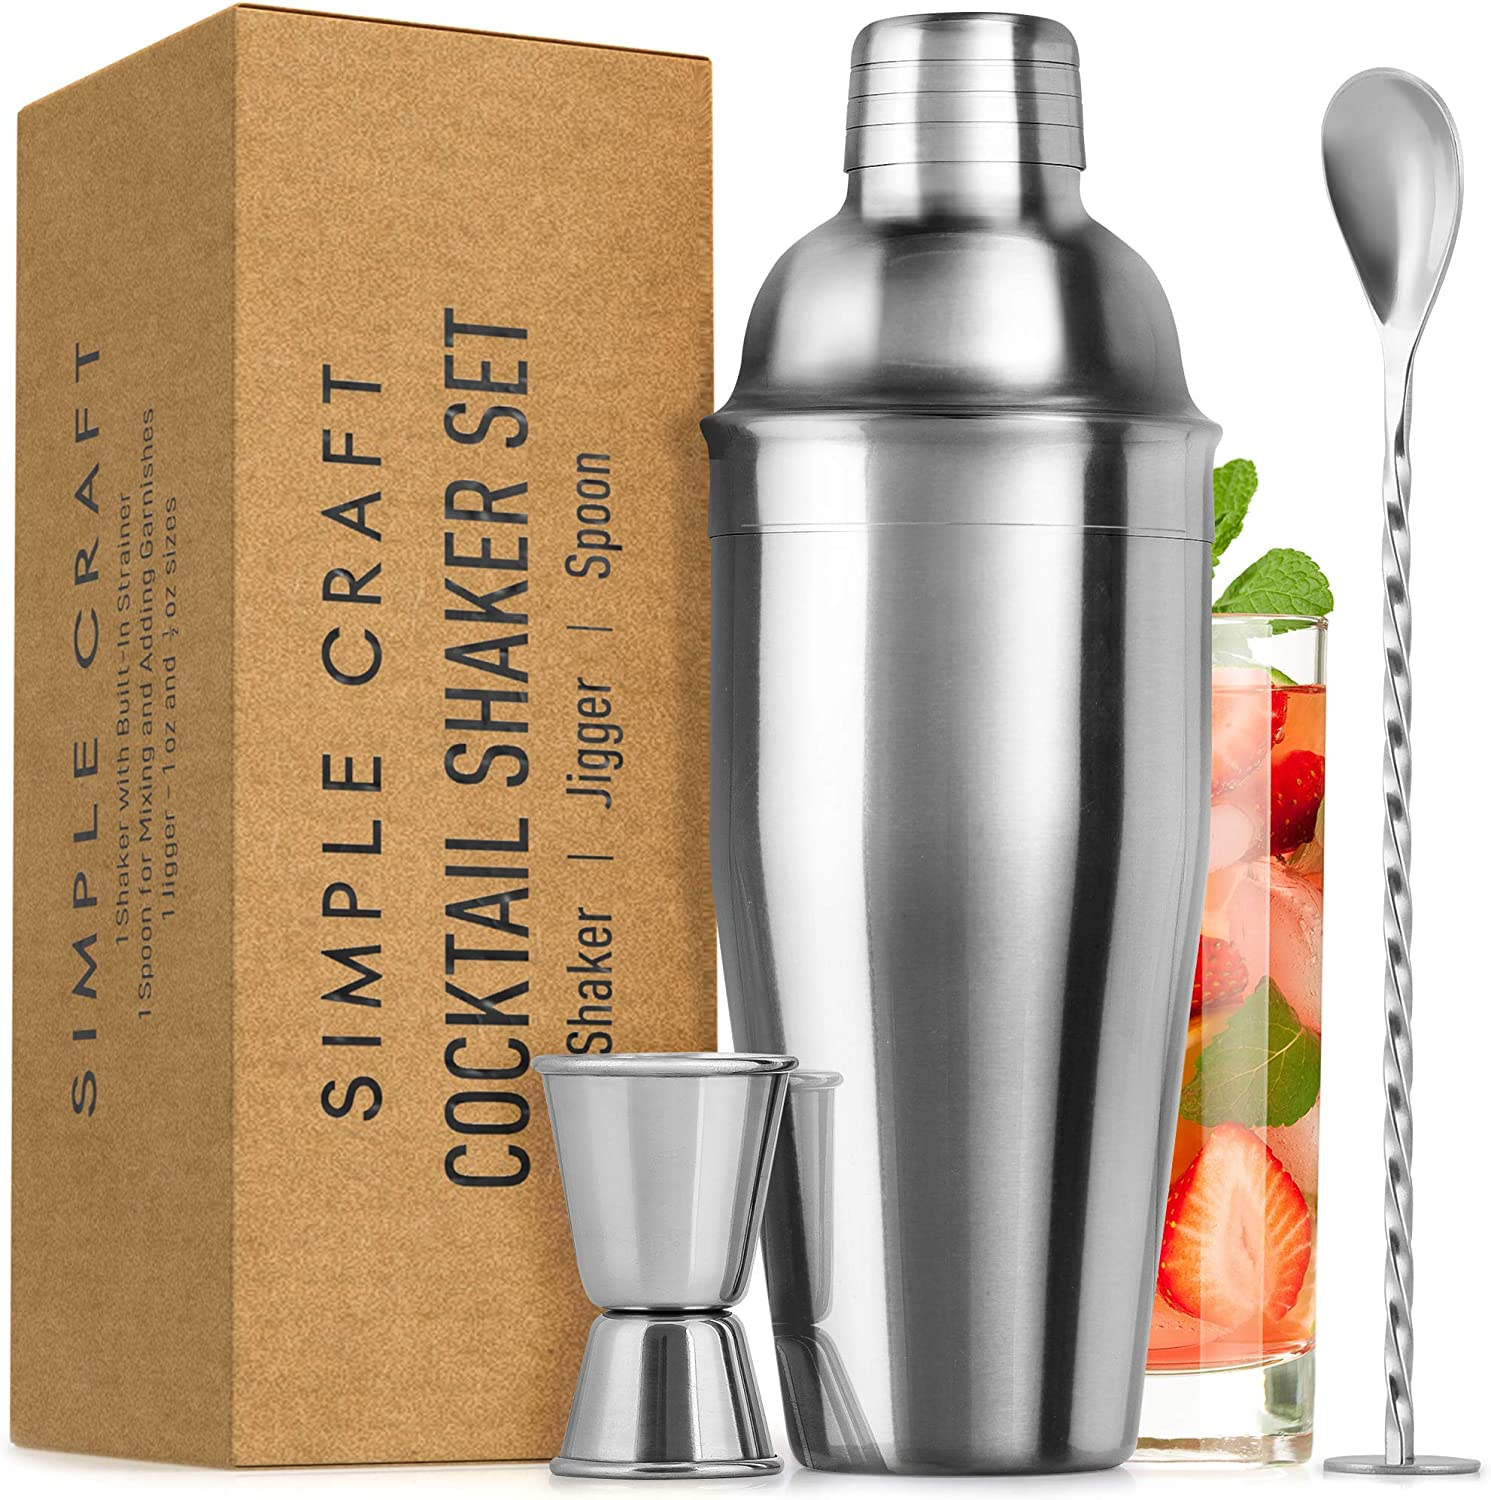 Simple Craft Cocktail Shaker Set - Stainless Steel 24oz Drink Shaker With Spoon and Jigger - Professional Grade Martini Shaker & Bar Shaker for Mixing Liquor, Chilled Drinks, and More